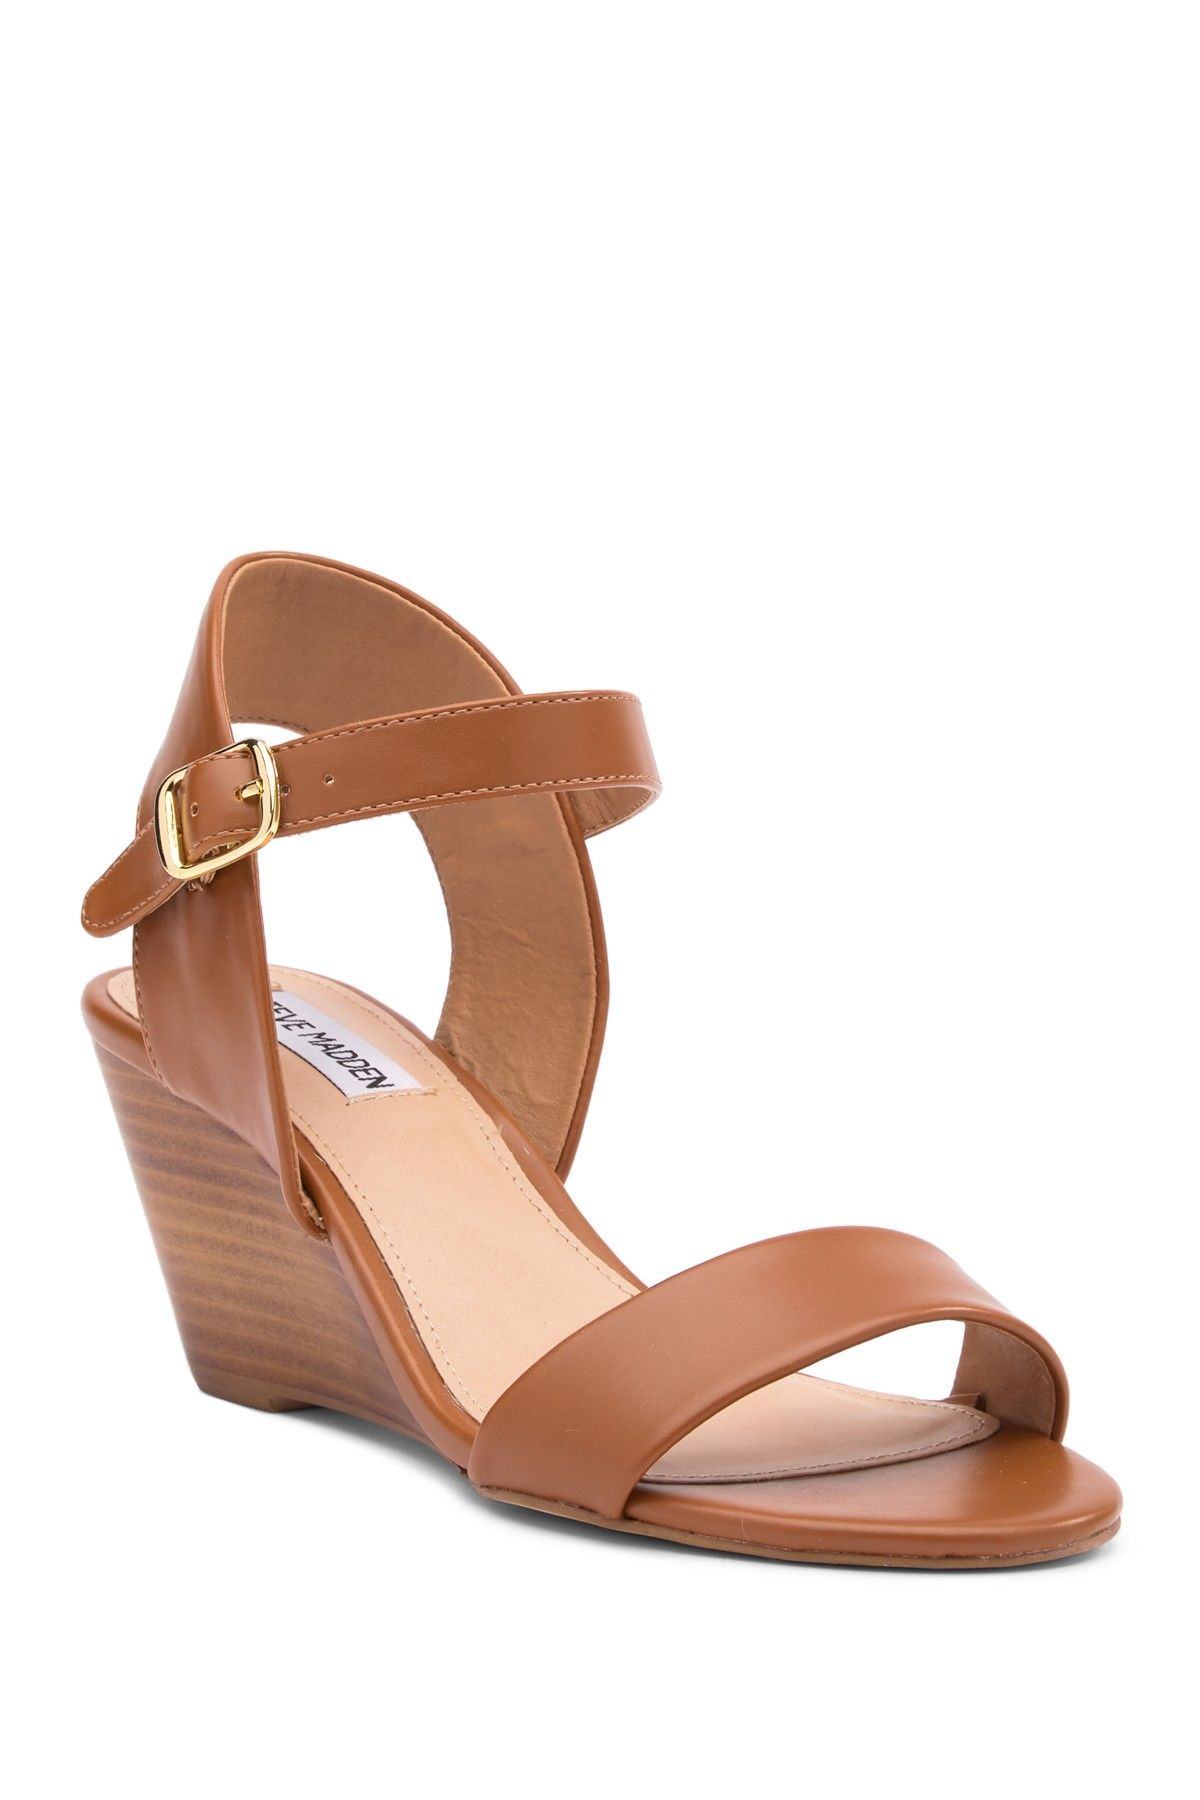 eb75734beb7 Graze Wedge Sandal in 2019 | SHOES | Sandals, Shoes, Wedge sandals